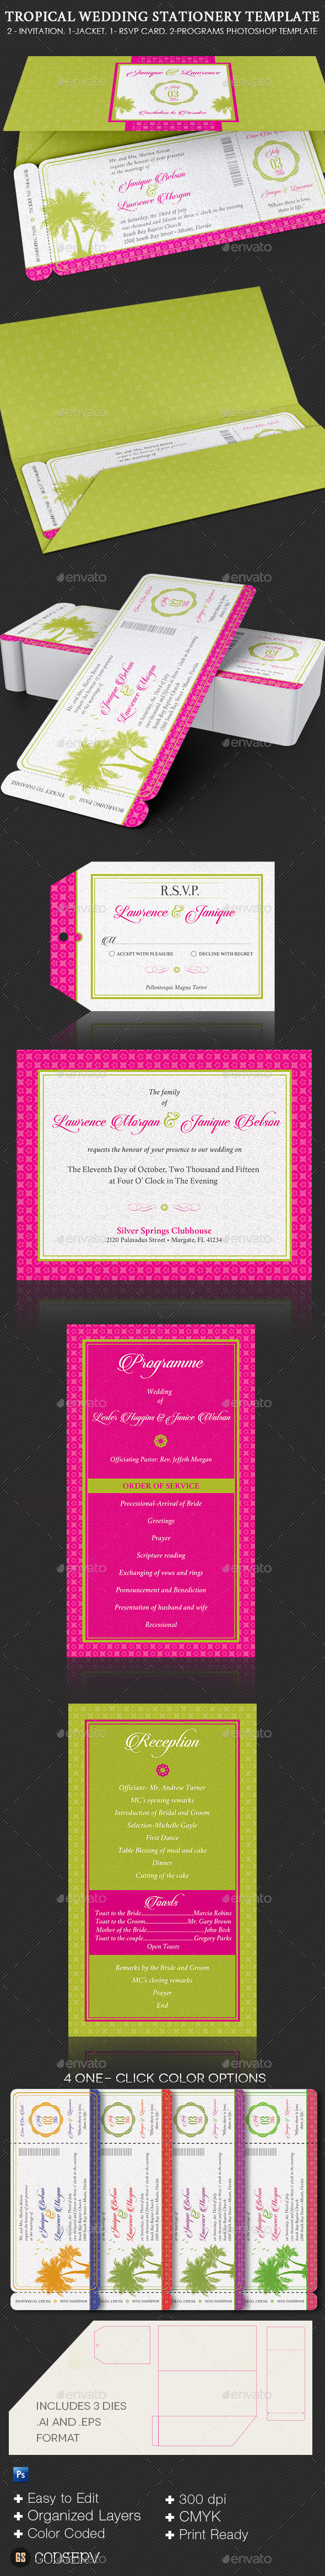 Tropical Wedding Stationery Template Set - Weddings Cards & Invites